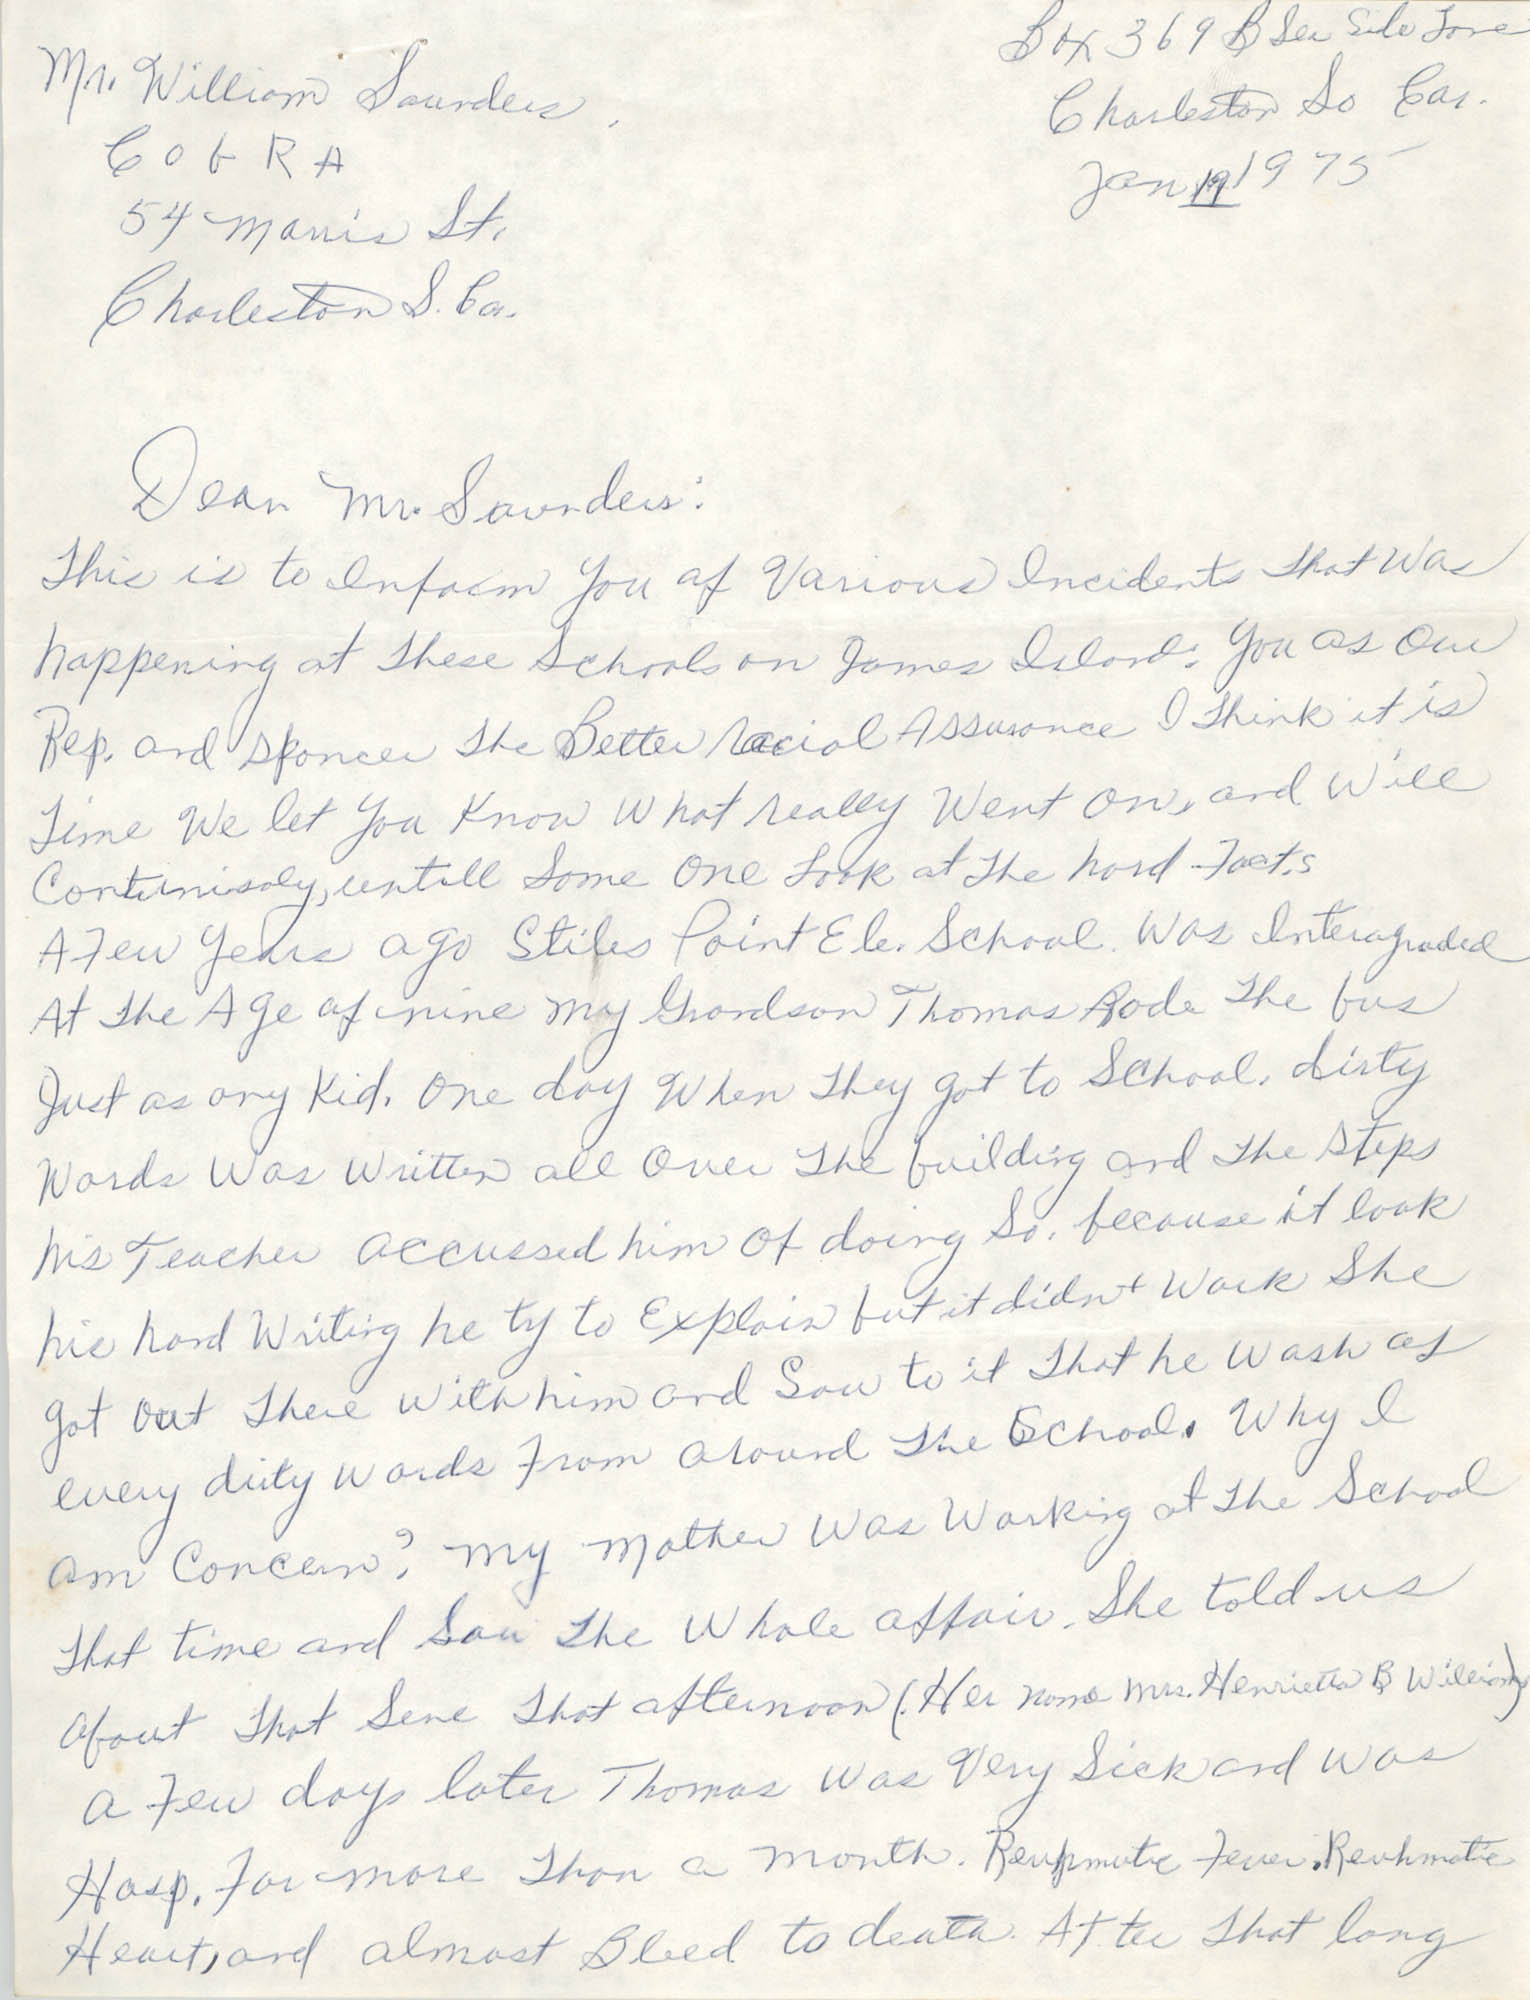 Letter to William Saunders, January 19, 1975